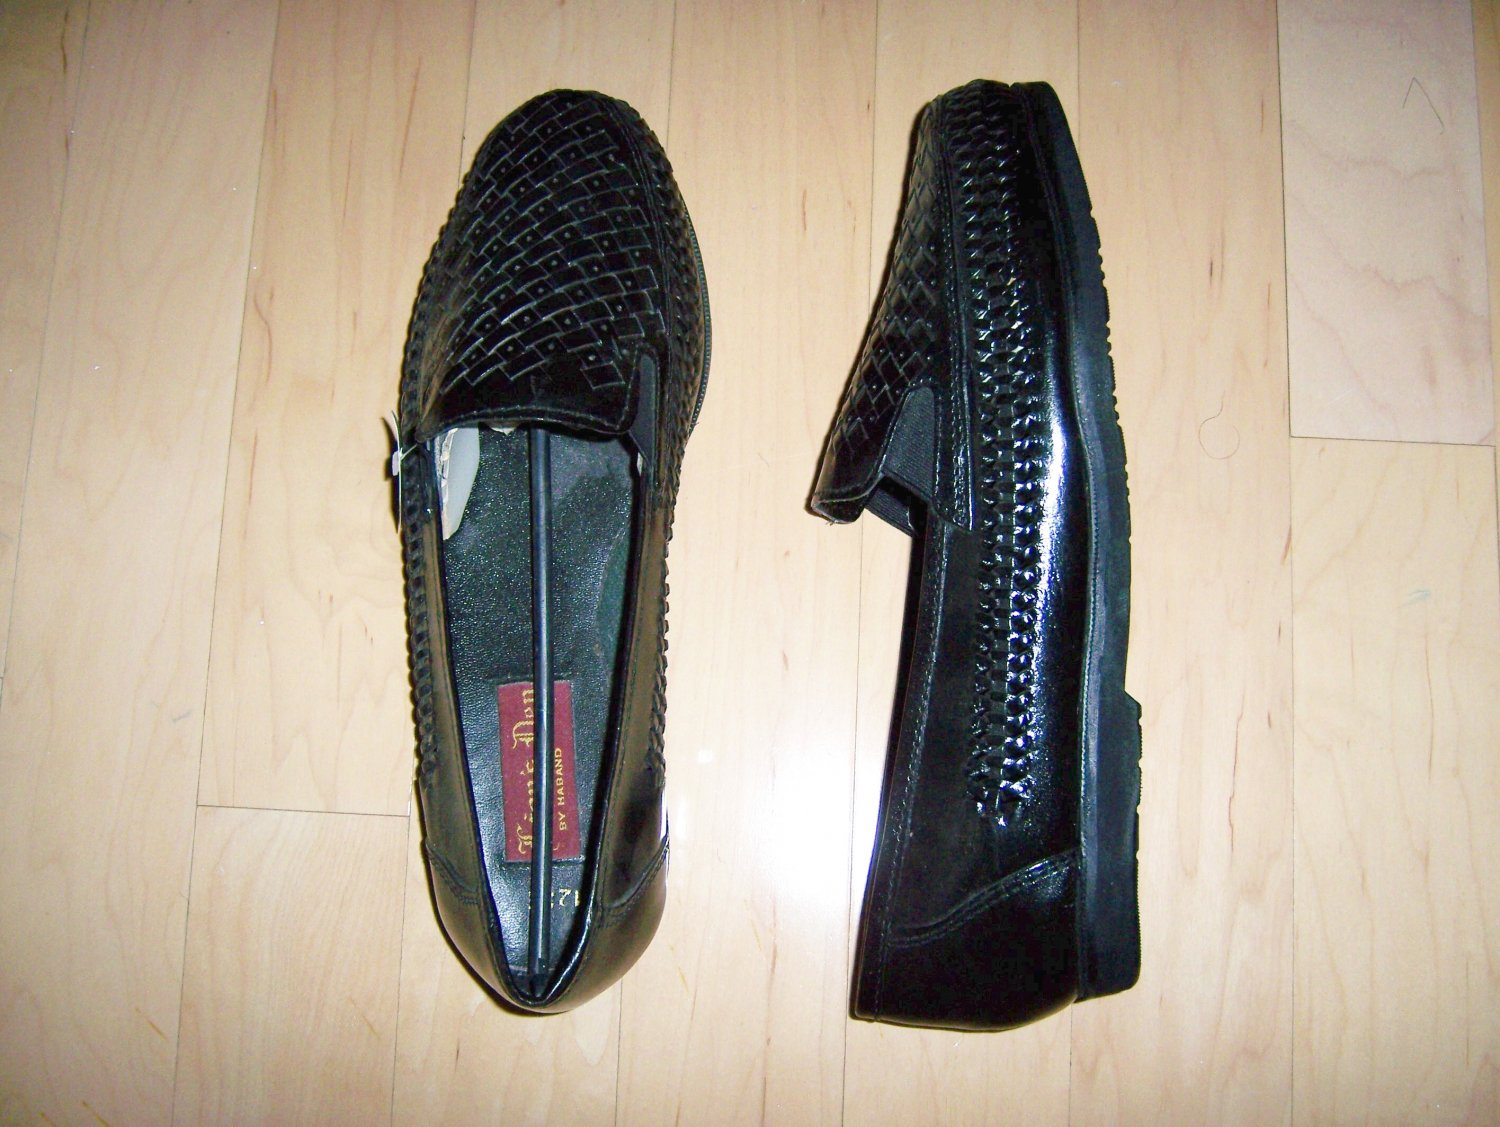 Black Loafers by Lion's Den Size 12EEE BNK167